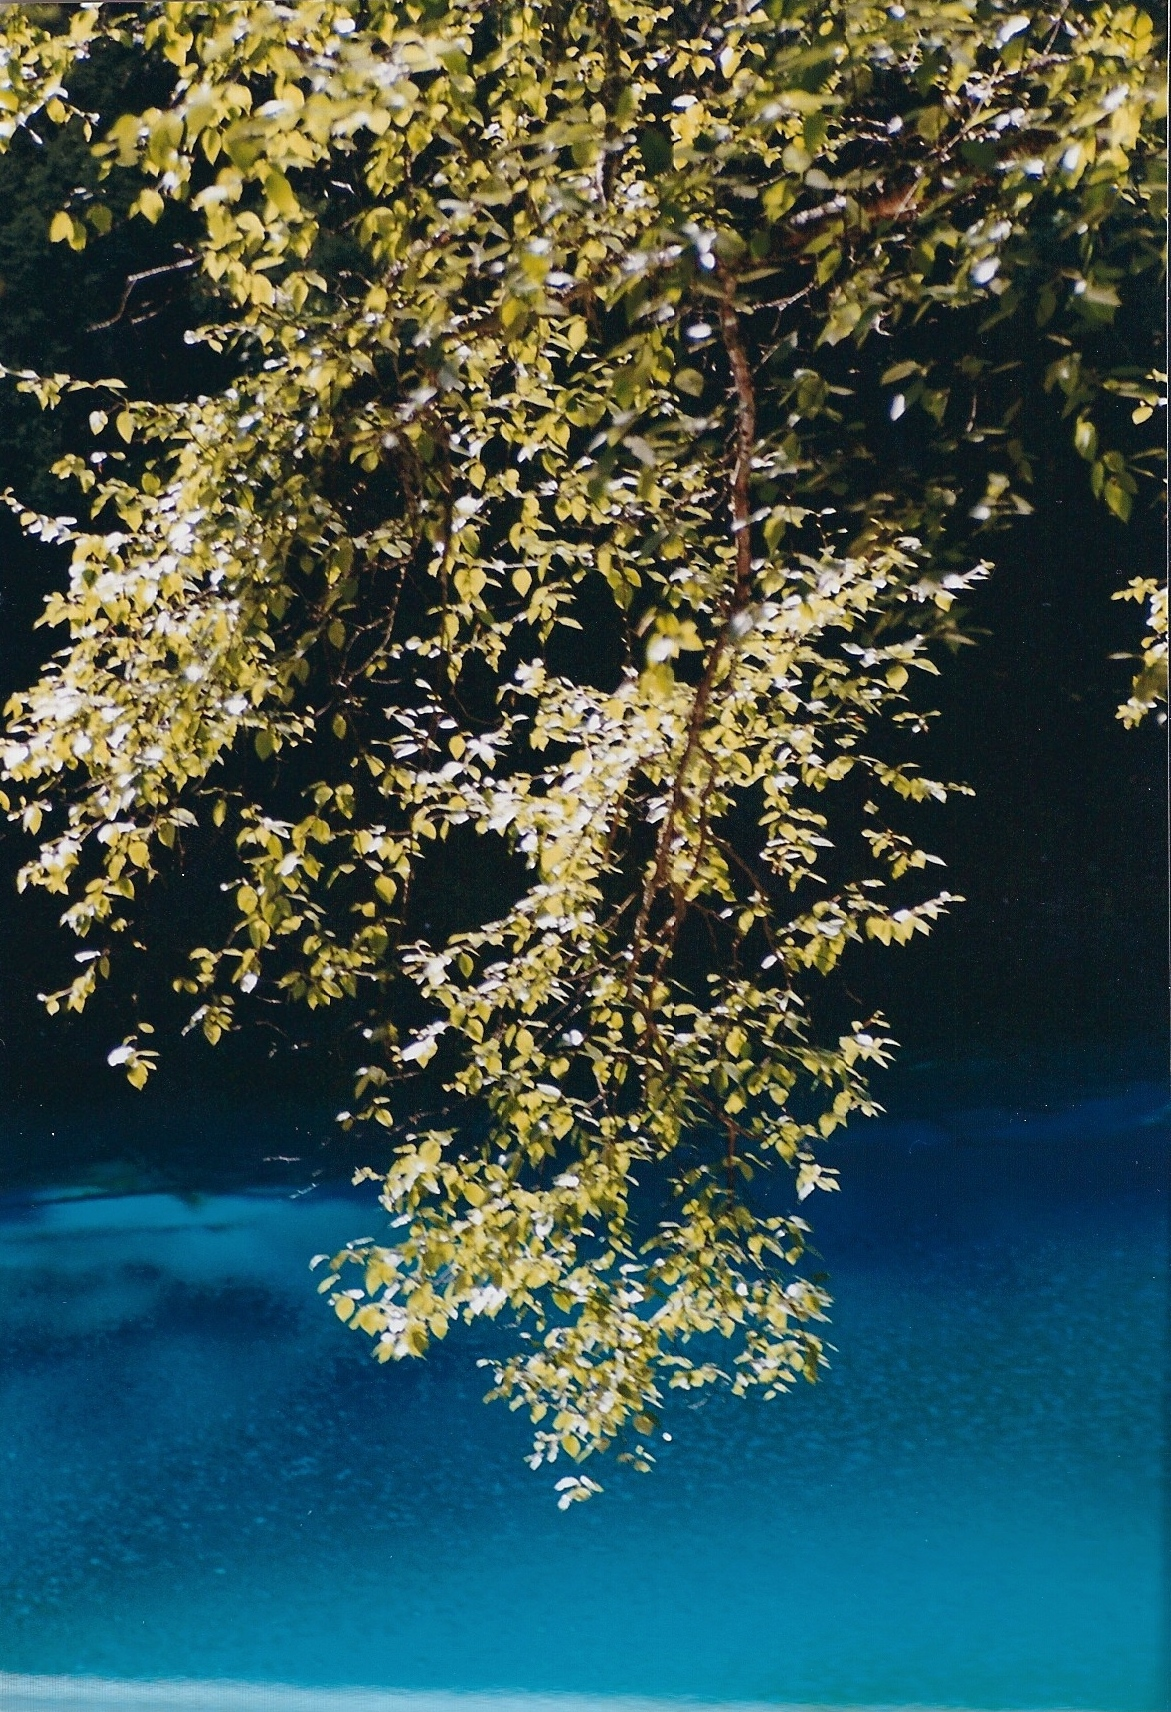 2000 China JiuZhaiGou 1.jpg